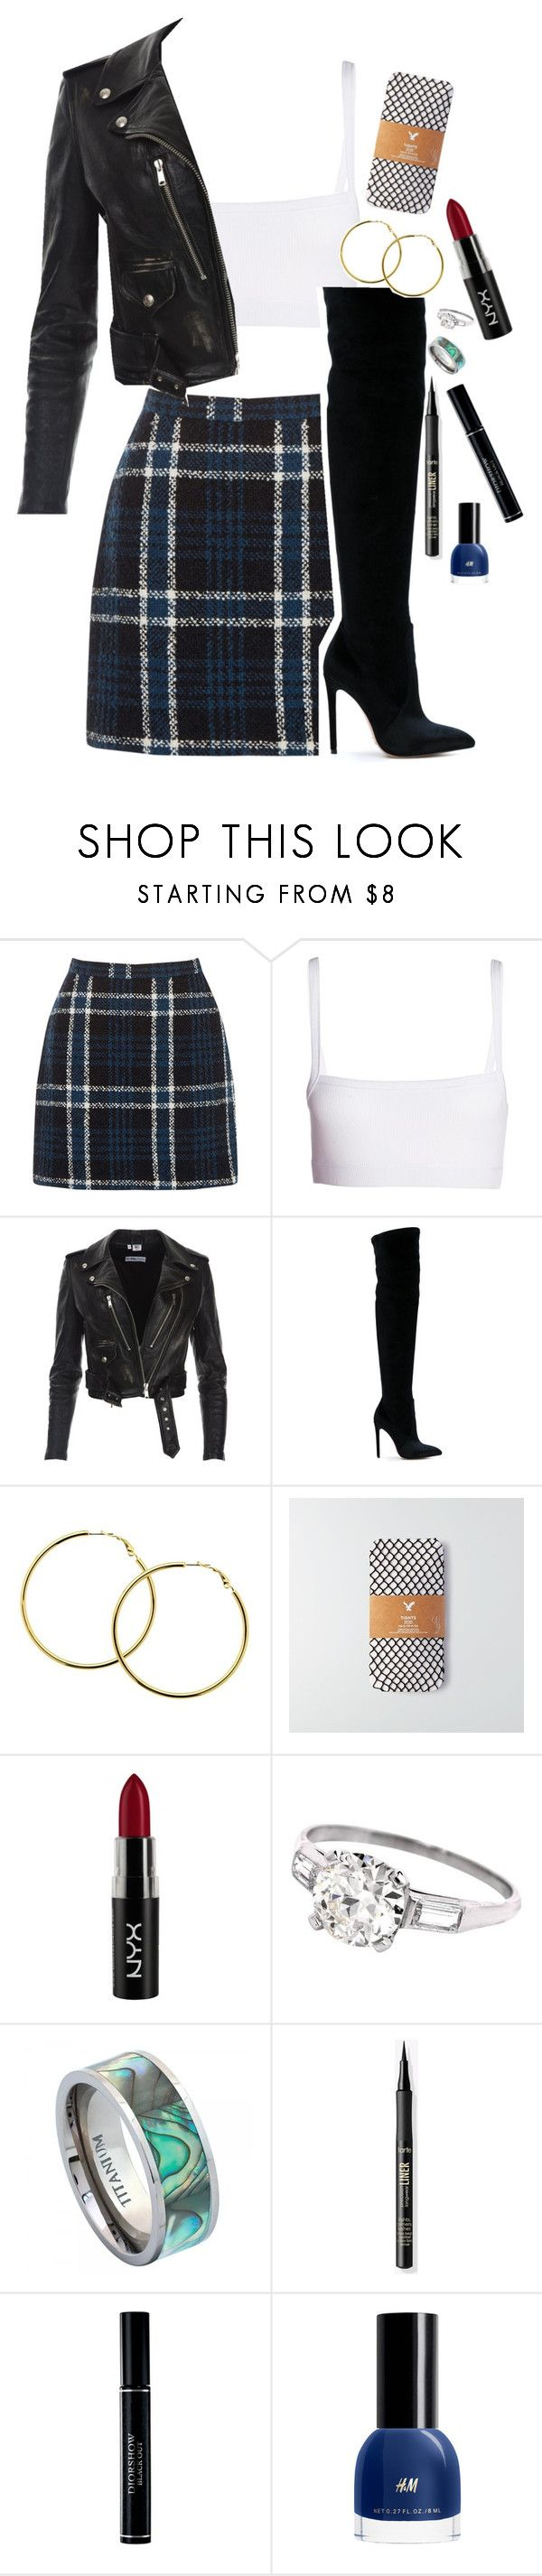 """what do ya think?"" by un-iversal ❤ liked on Polyvore featuring Dries Van Noten, Gianni Renzi, Melissa Odabash, American Eagle Outfitters, NYX and Christian Dior"